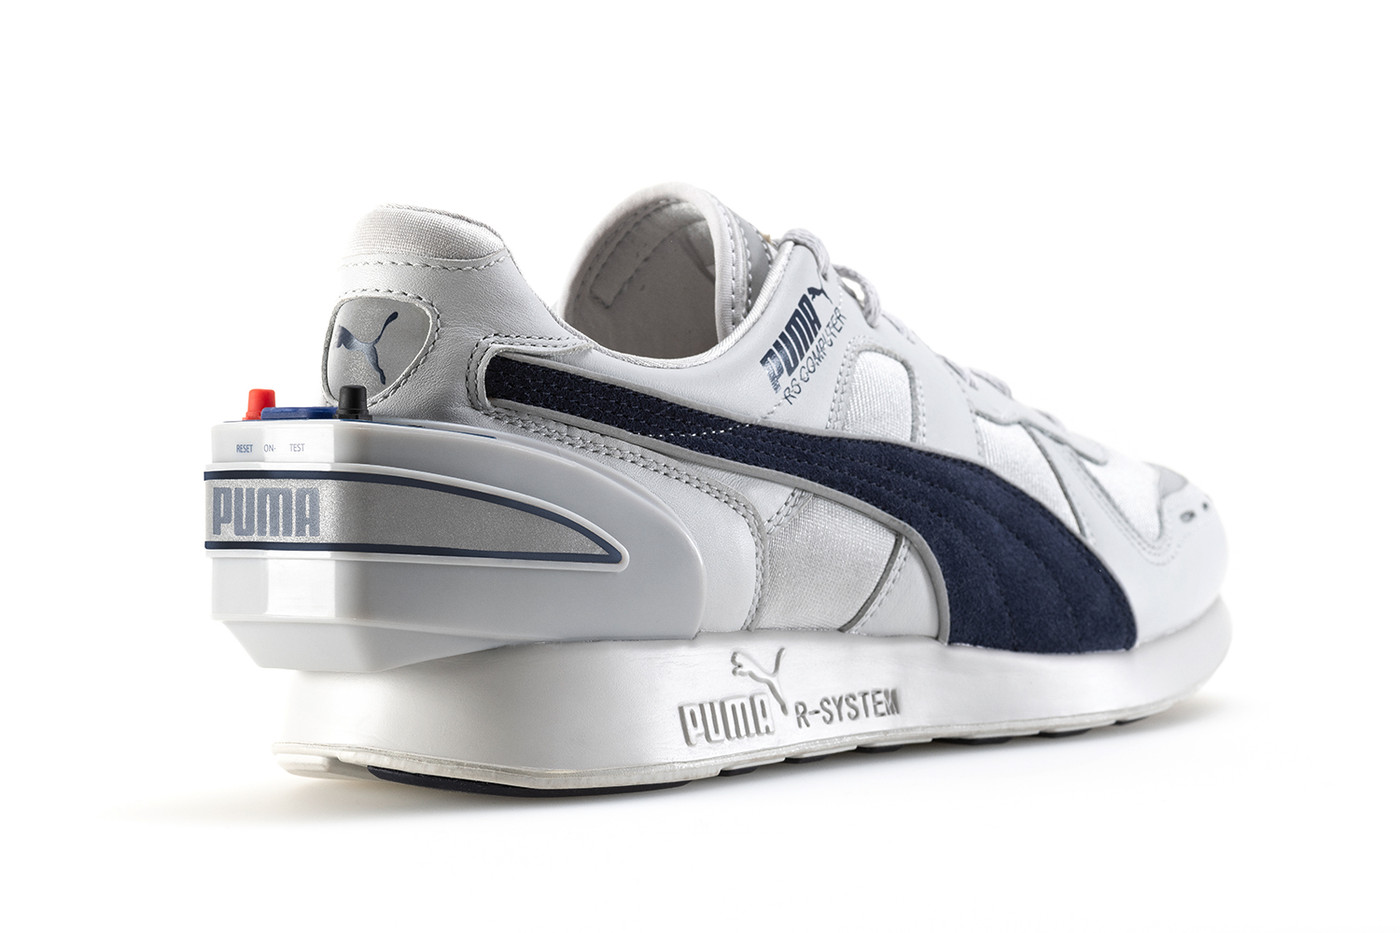 757371fe53d Puma is rereleasing its classic 1986 RS-Computer running shoe - The ...